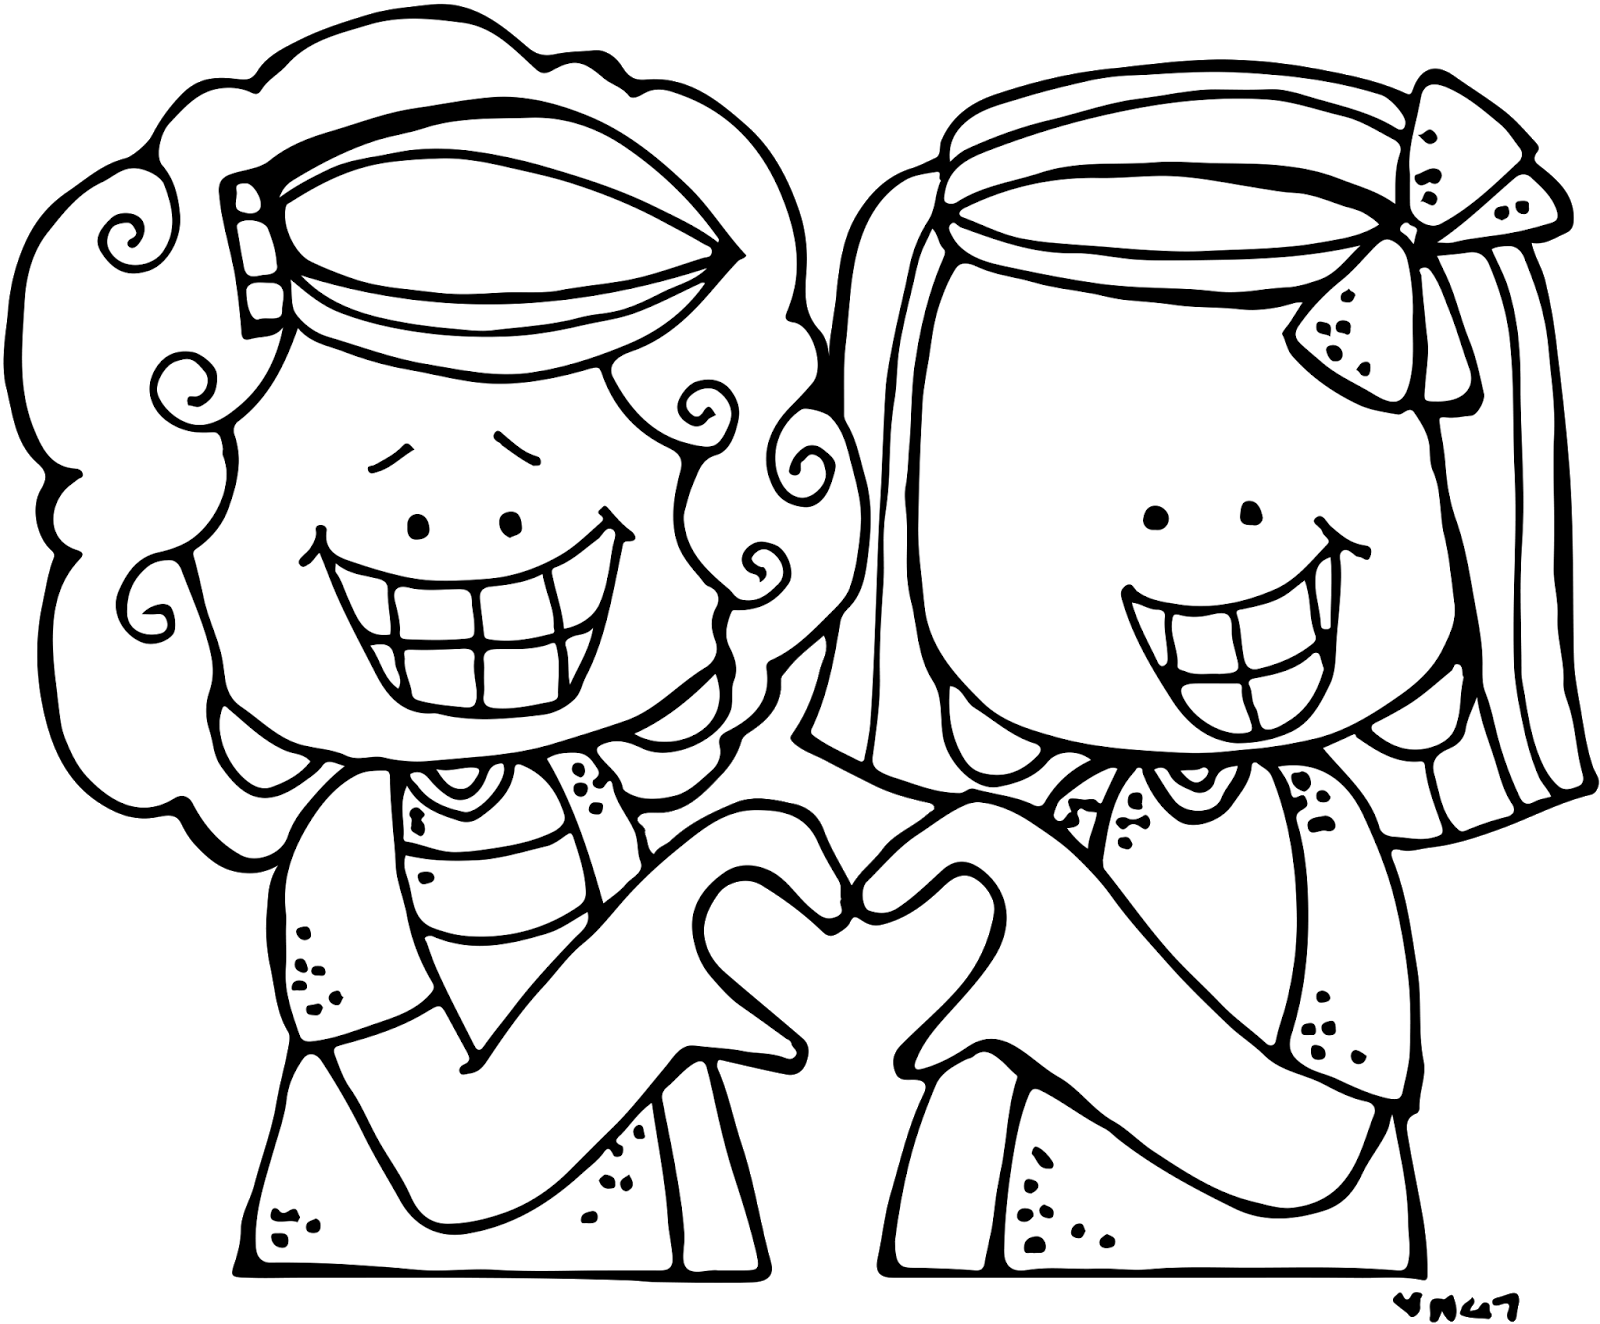 Planner clipart black and white. Melonheadz love everyone free